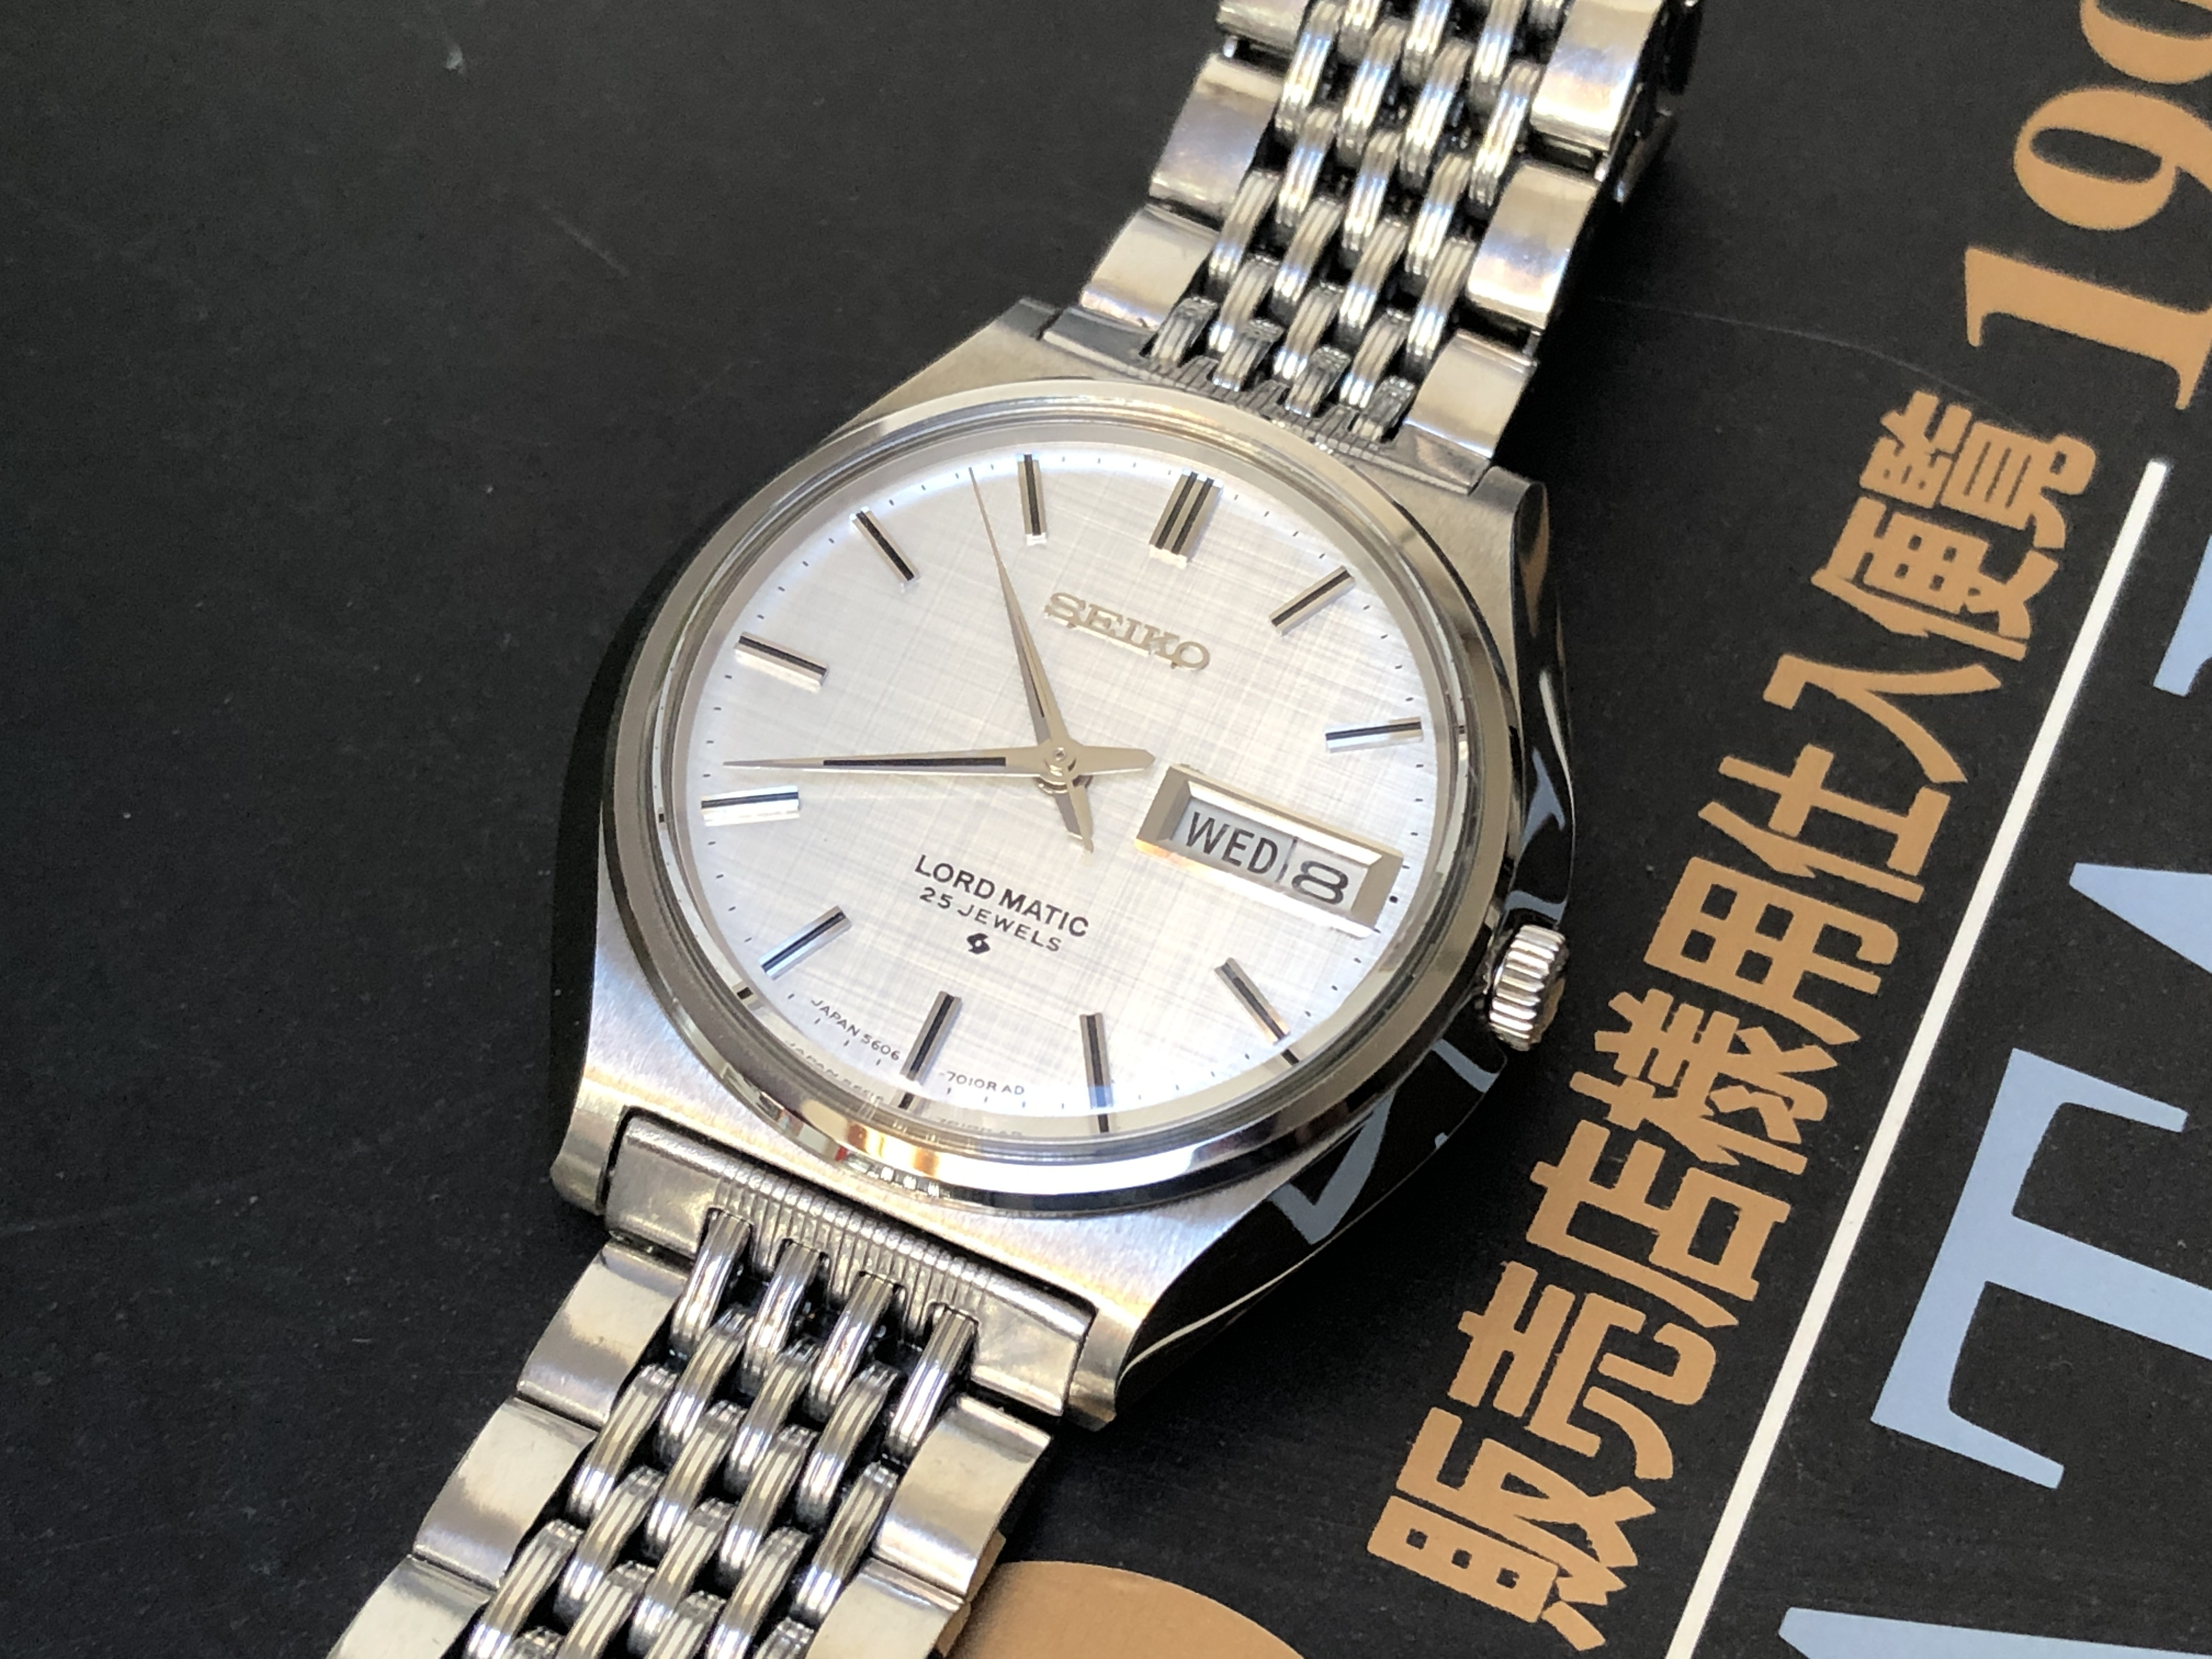 Seiko Lord-Matic 5606-7010